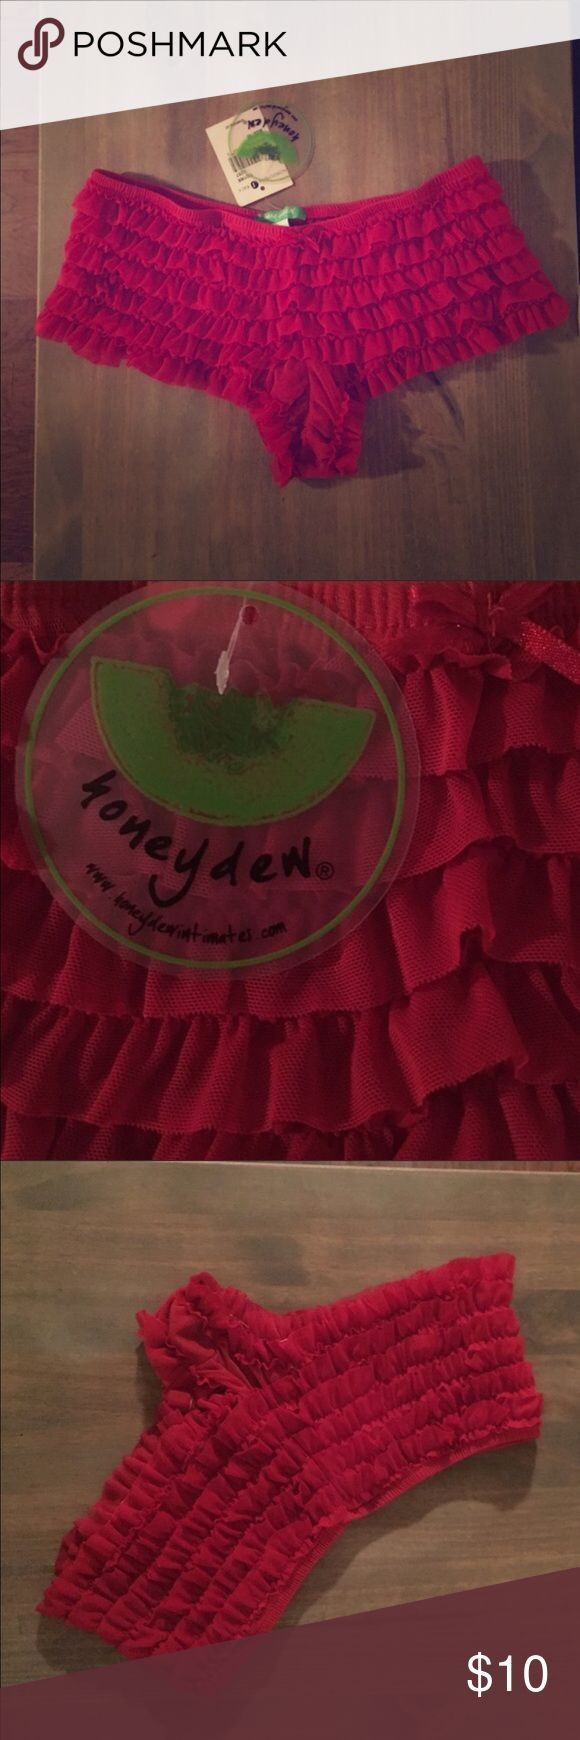 Adorable red ruffle panty -nwt These are positively adorable and never worn. Super soft. Size medium. Honeydew Intimates Intimates & Sleepwear Panties - dessous lingerie, sexyy lingerie, buy lingerie *sponsored https://www.pinterest.com/lingerie_yes/ https://www.pinterest.com/explore/lingerie/ https://www.pinterest.com/lingerie_yes/lingerie-femme/ http://us.asos.com/women/lingerie-sleepwear/cat/?cid=6046